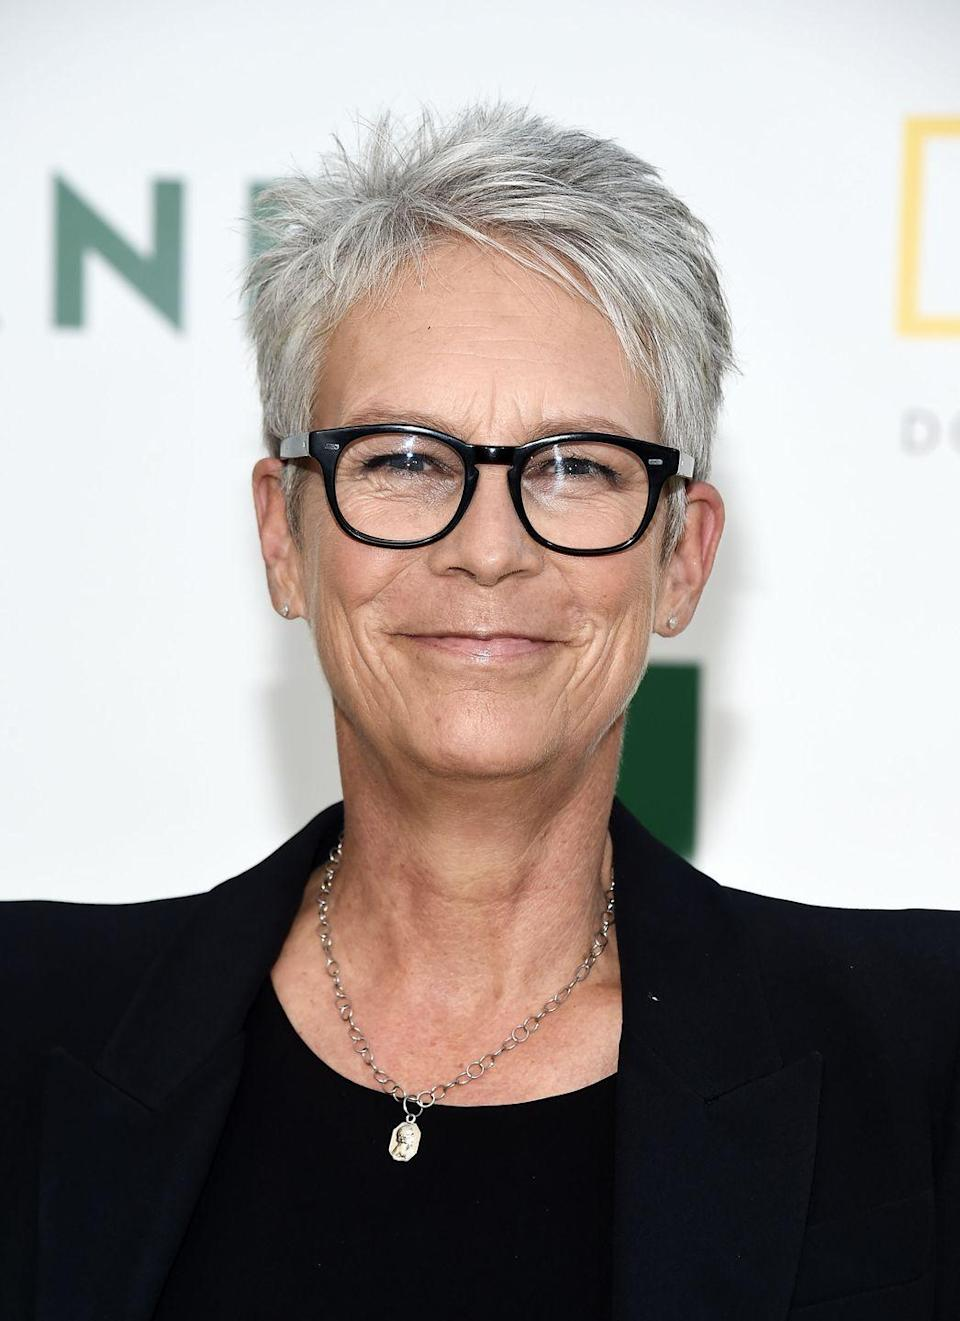 """<p>""""I've done it all. I've had a little plastic surgery. I've had a little lipo. I've had a little Botox. And you know what? None of it works. None of it,"""" the actress admitted back in 2002 in an interview with <em><a href=""""http://www.telegraph.co.uk/news/worldnews/northamerica/usa/1405016/Nips-tucks-and-liposuction-dont-work-Ive-still-got-bad-thighs-and-a-fat-tummy.html"""" rel=""""nofollow noopener"""" target=""""_blank"""" data-ylk=""""slk:The Telegraph"""" class=""""link rapid-noclick-resp"""">The Telegraph</a>.</em></p>"""